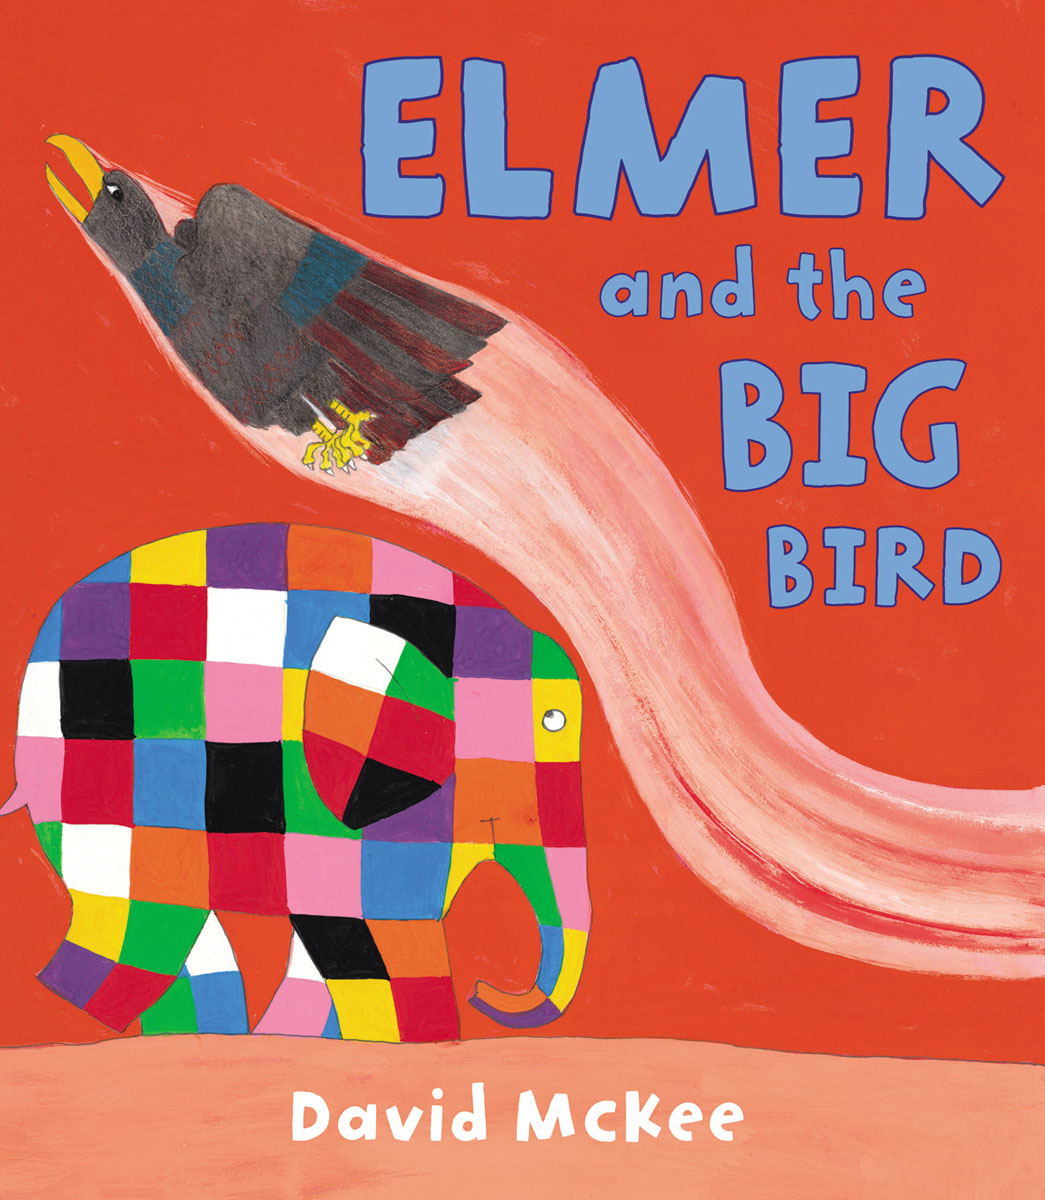 Elmer and the Big Bird confessions of a former bully